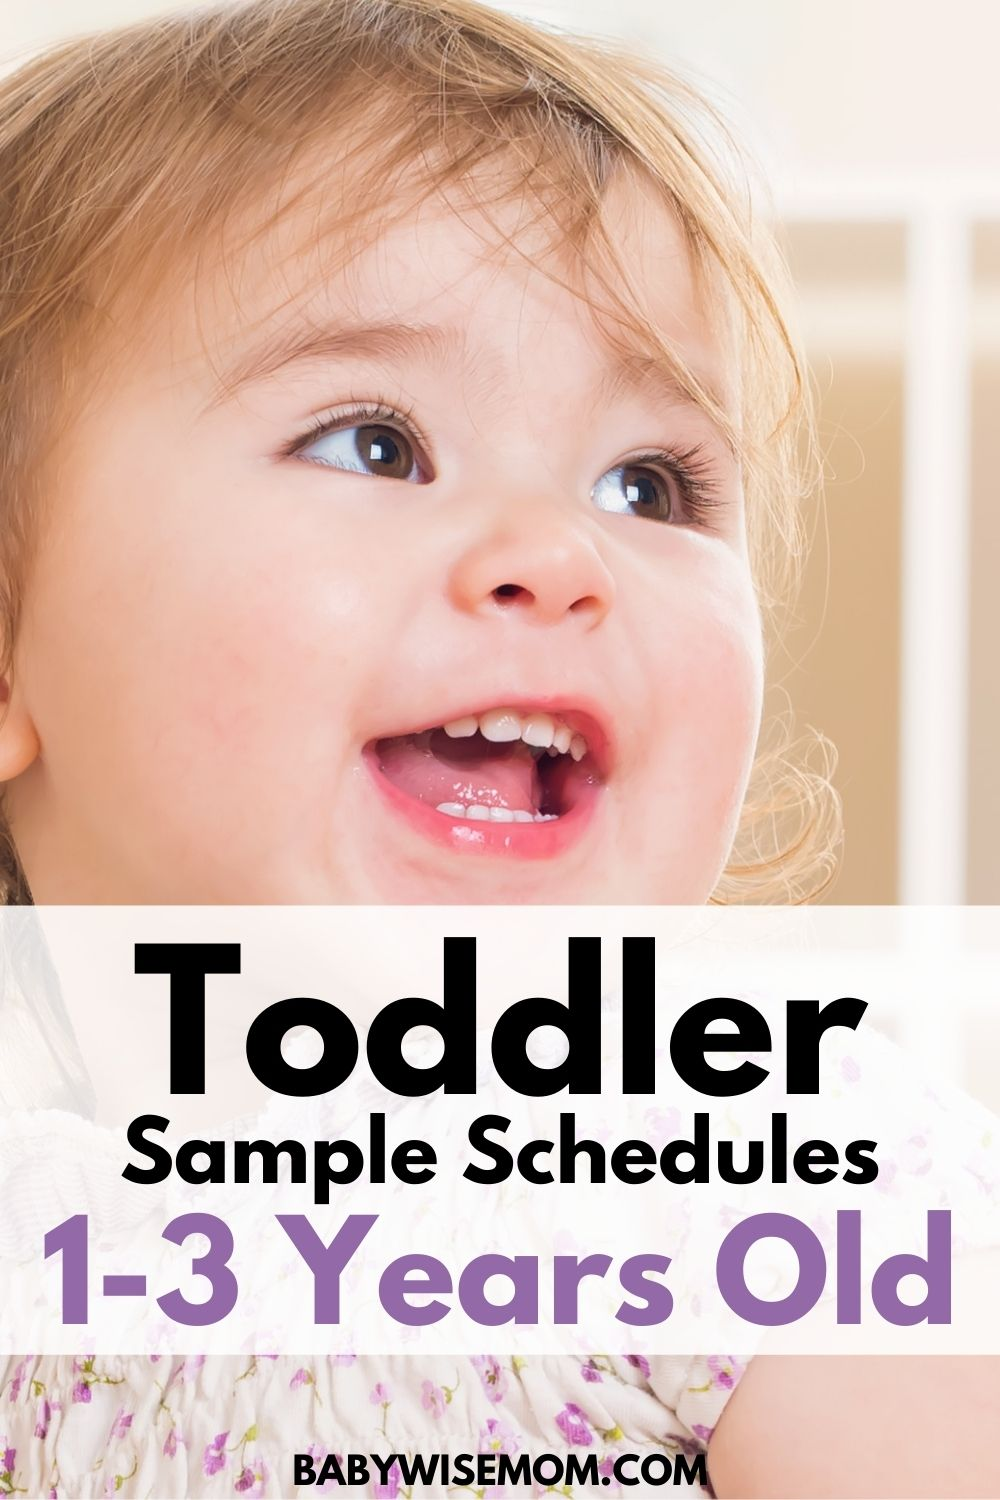 toddler sample schedules 1-3 years old